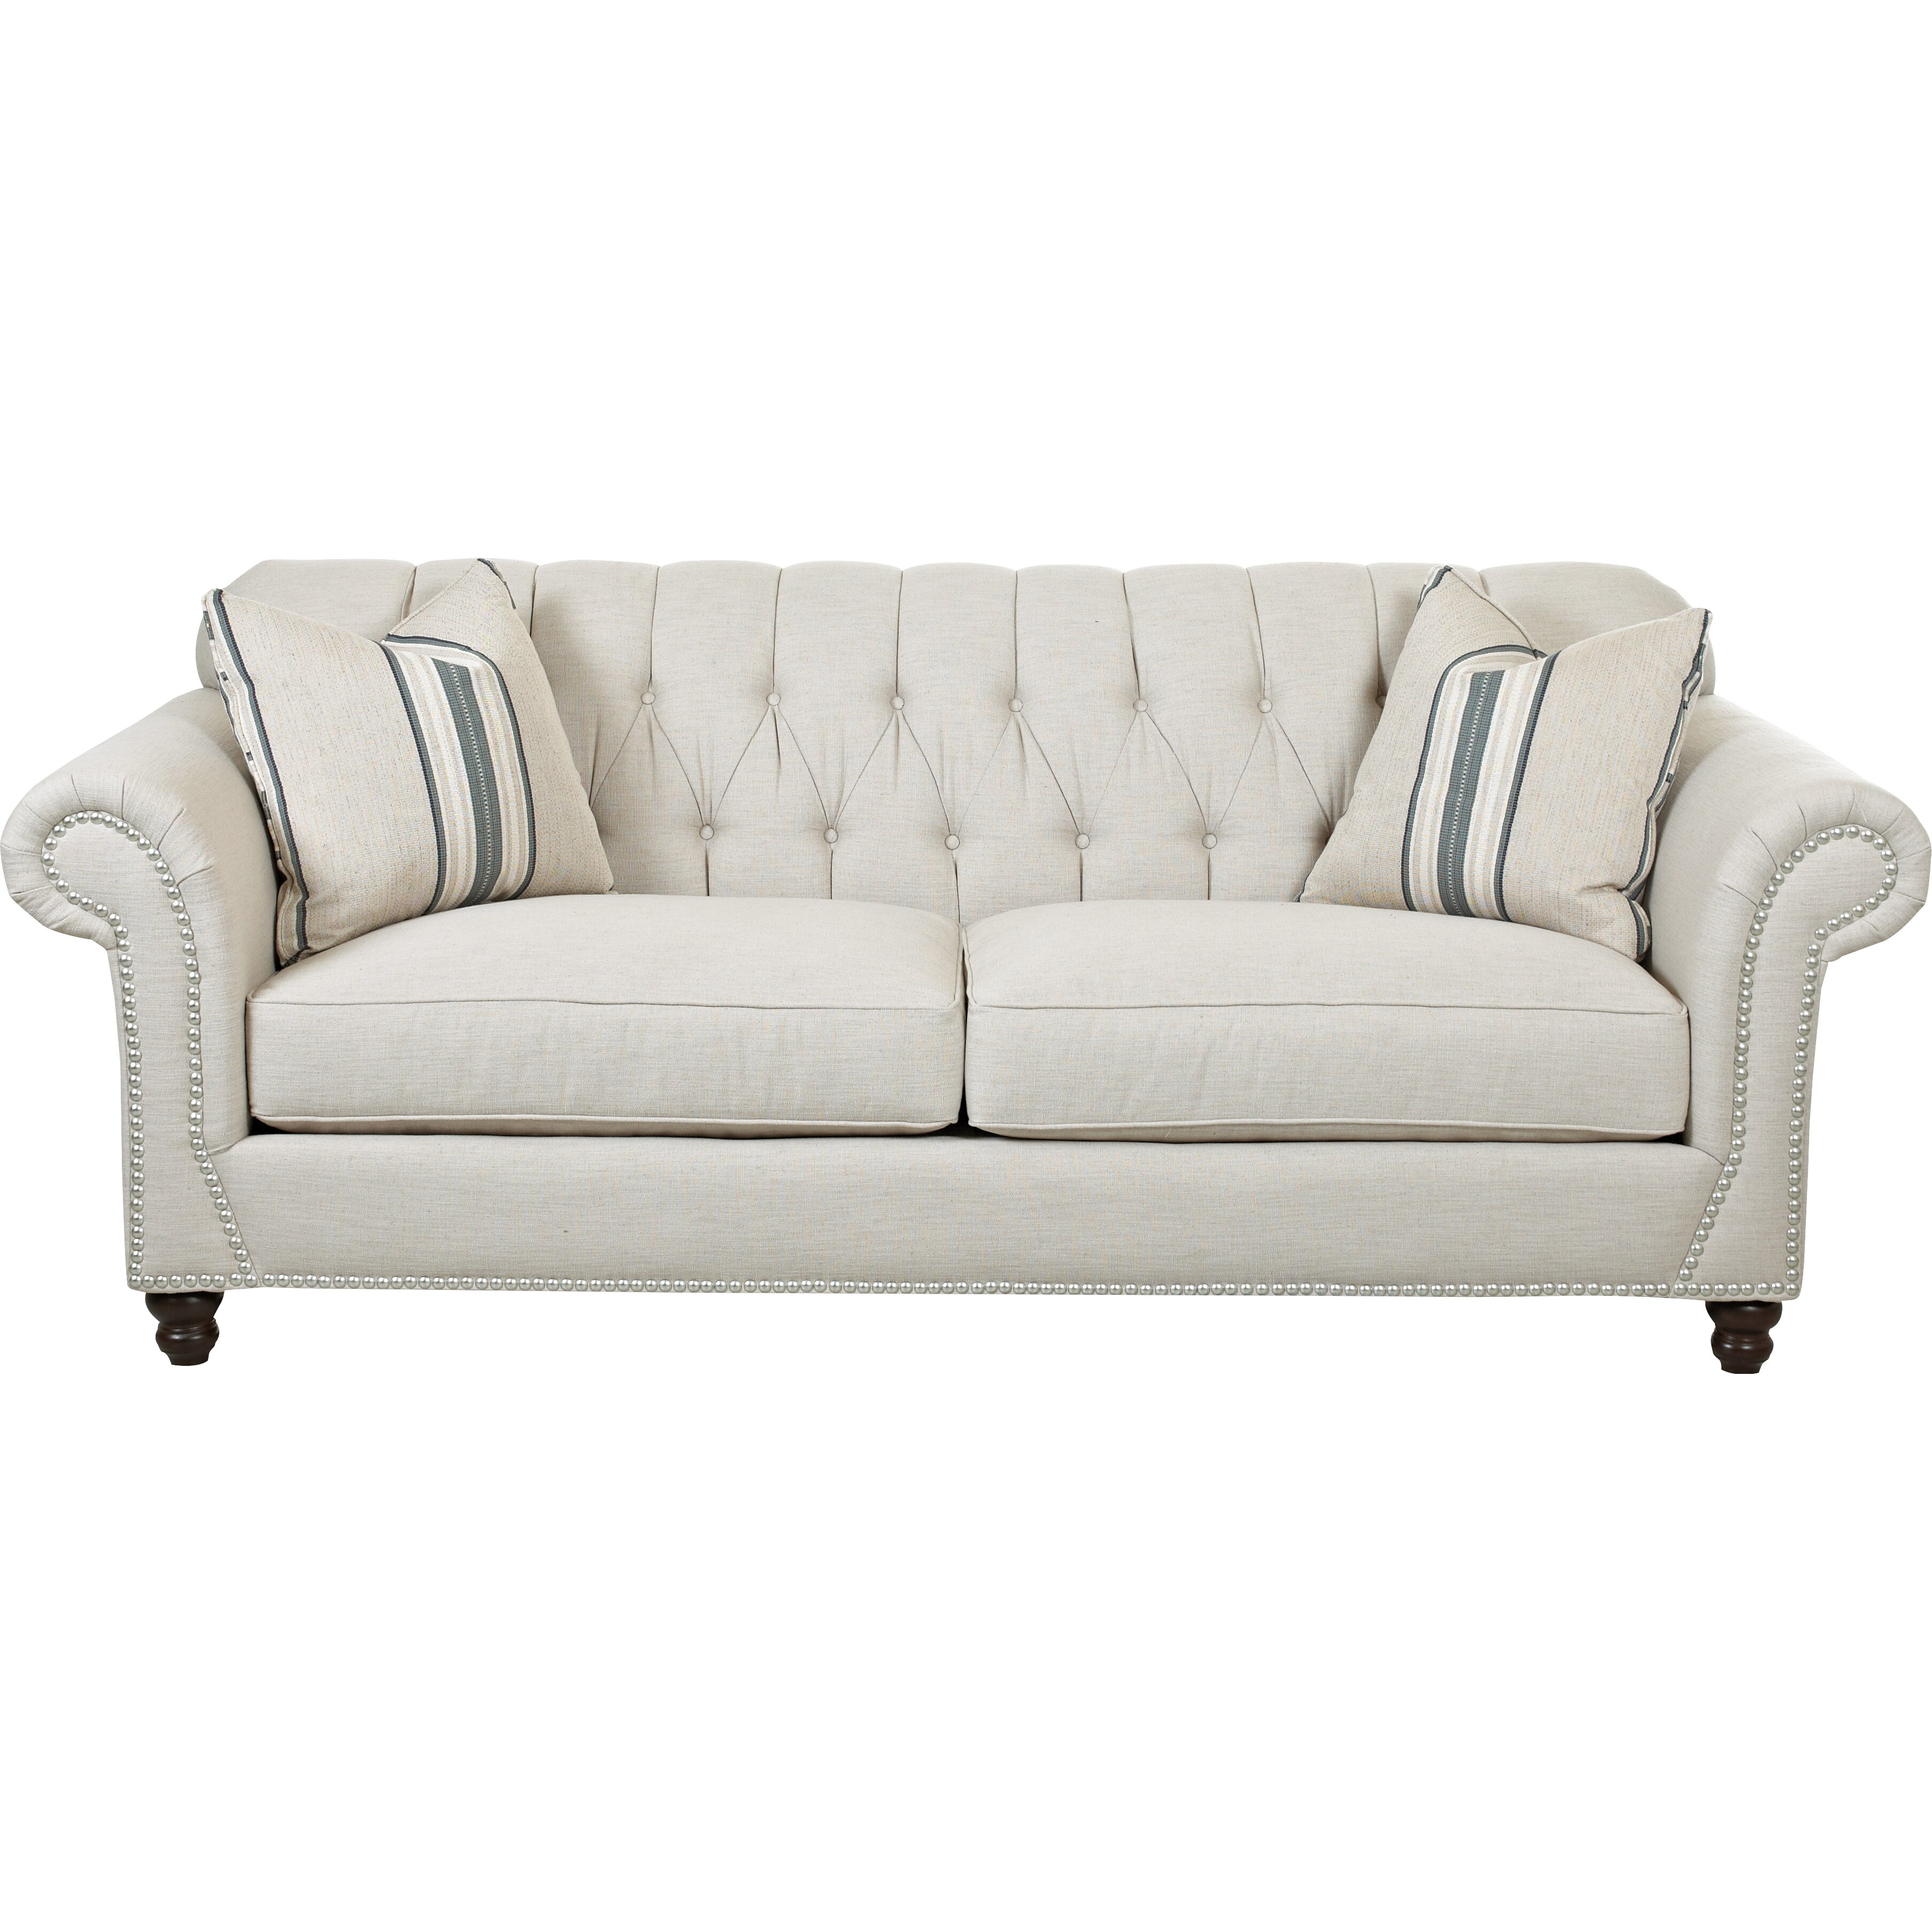 Lawson sofa definition excellent beige sofas couches u for Define settee